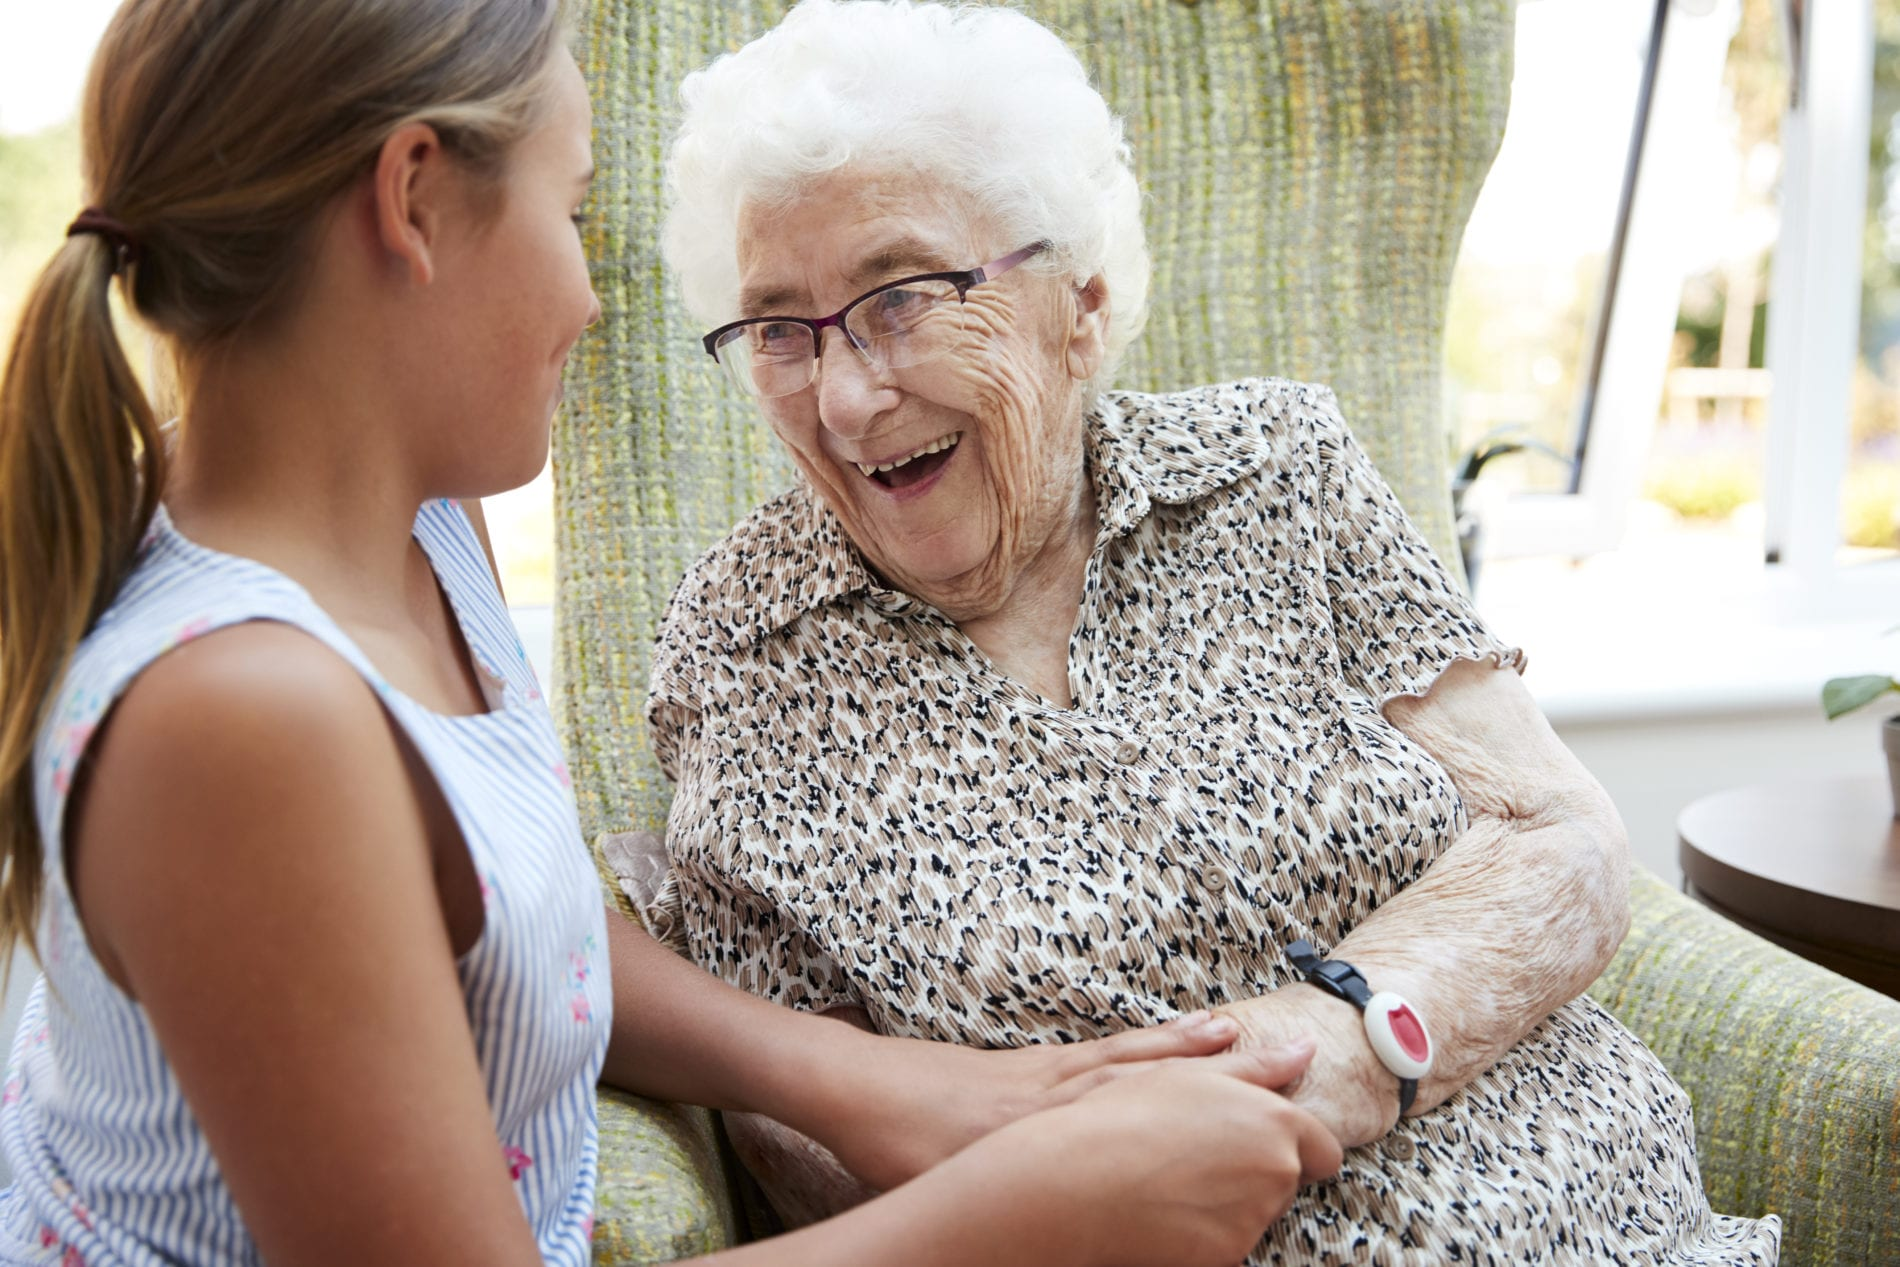 Things to Bring for a Loved One in a Dementia Care Home